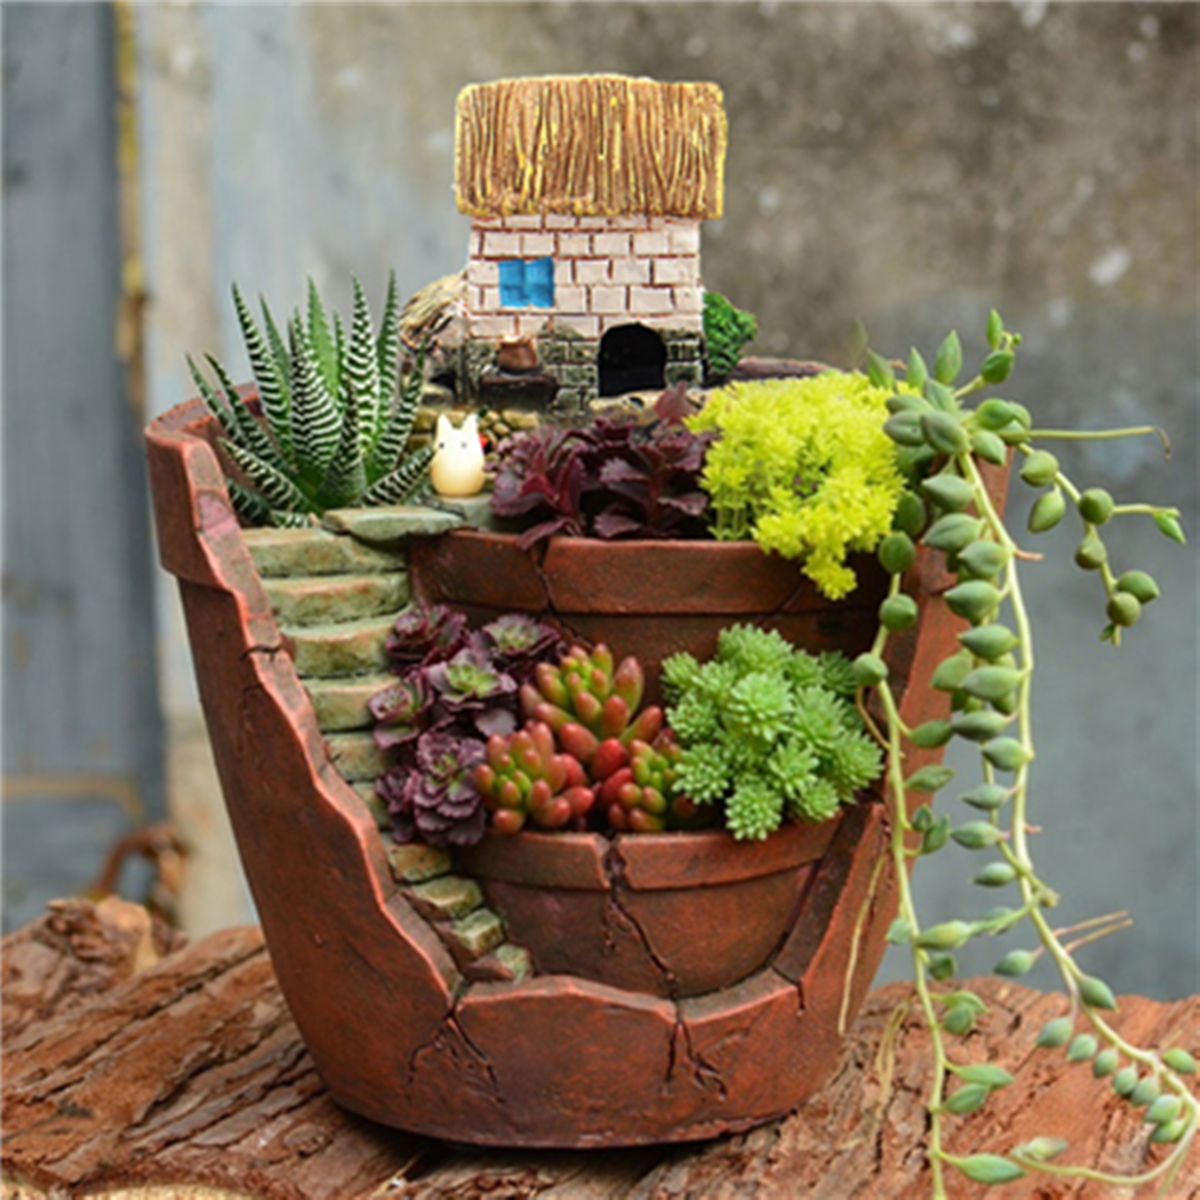 Succulent Herb Flower Basket Planter Plant Sky Bonsai Green Plants Resin Pot Garden House Home Decor